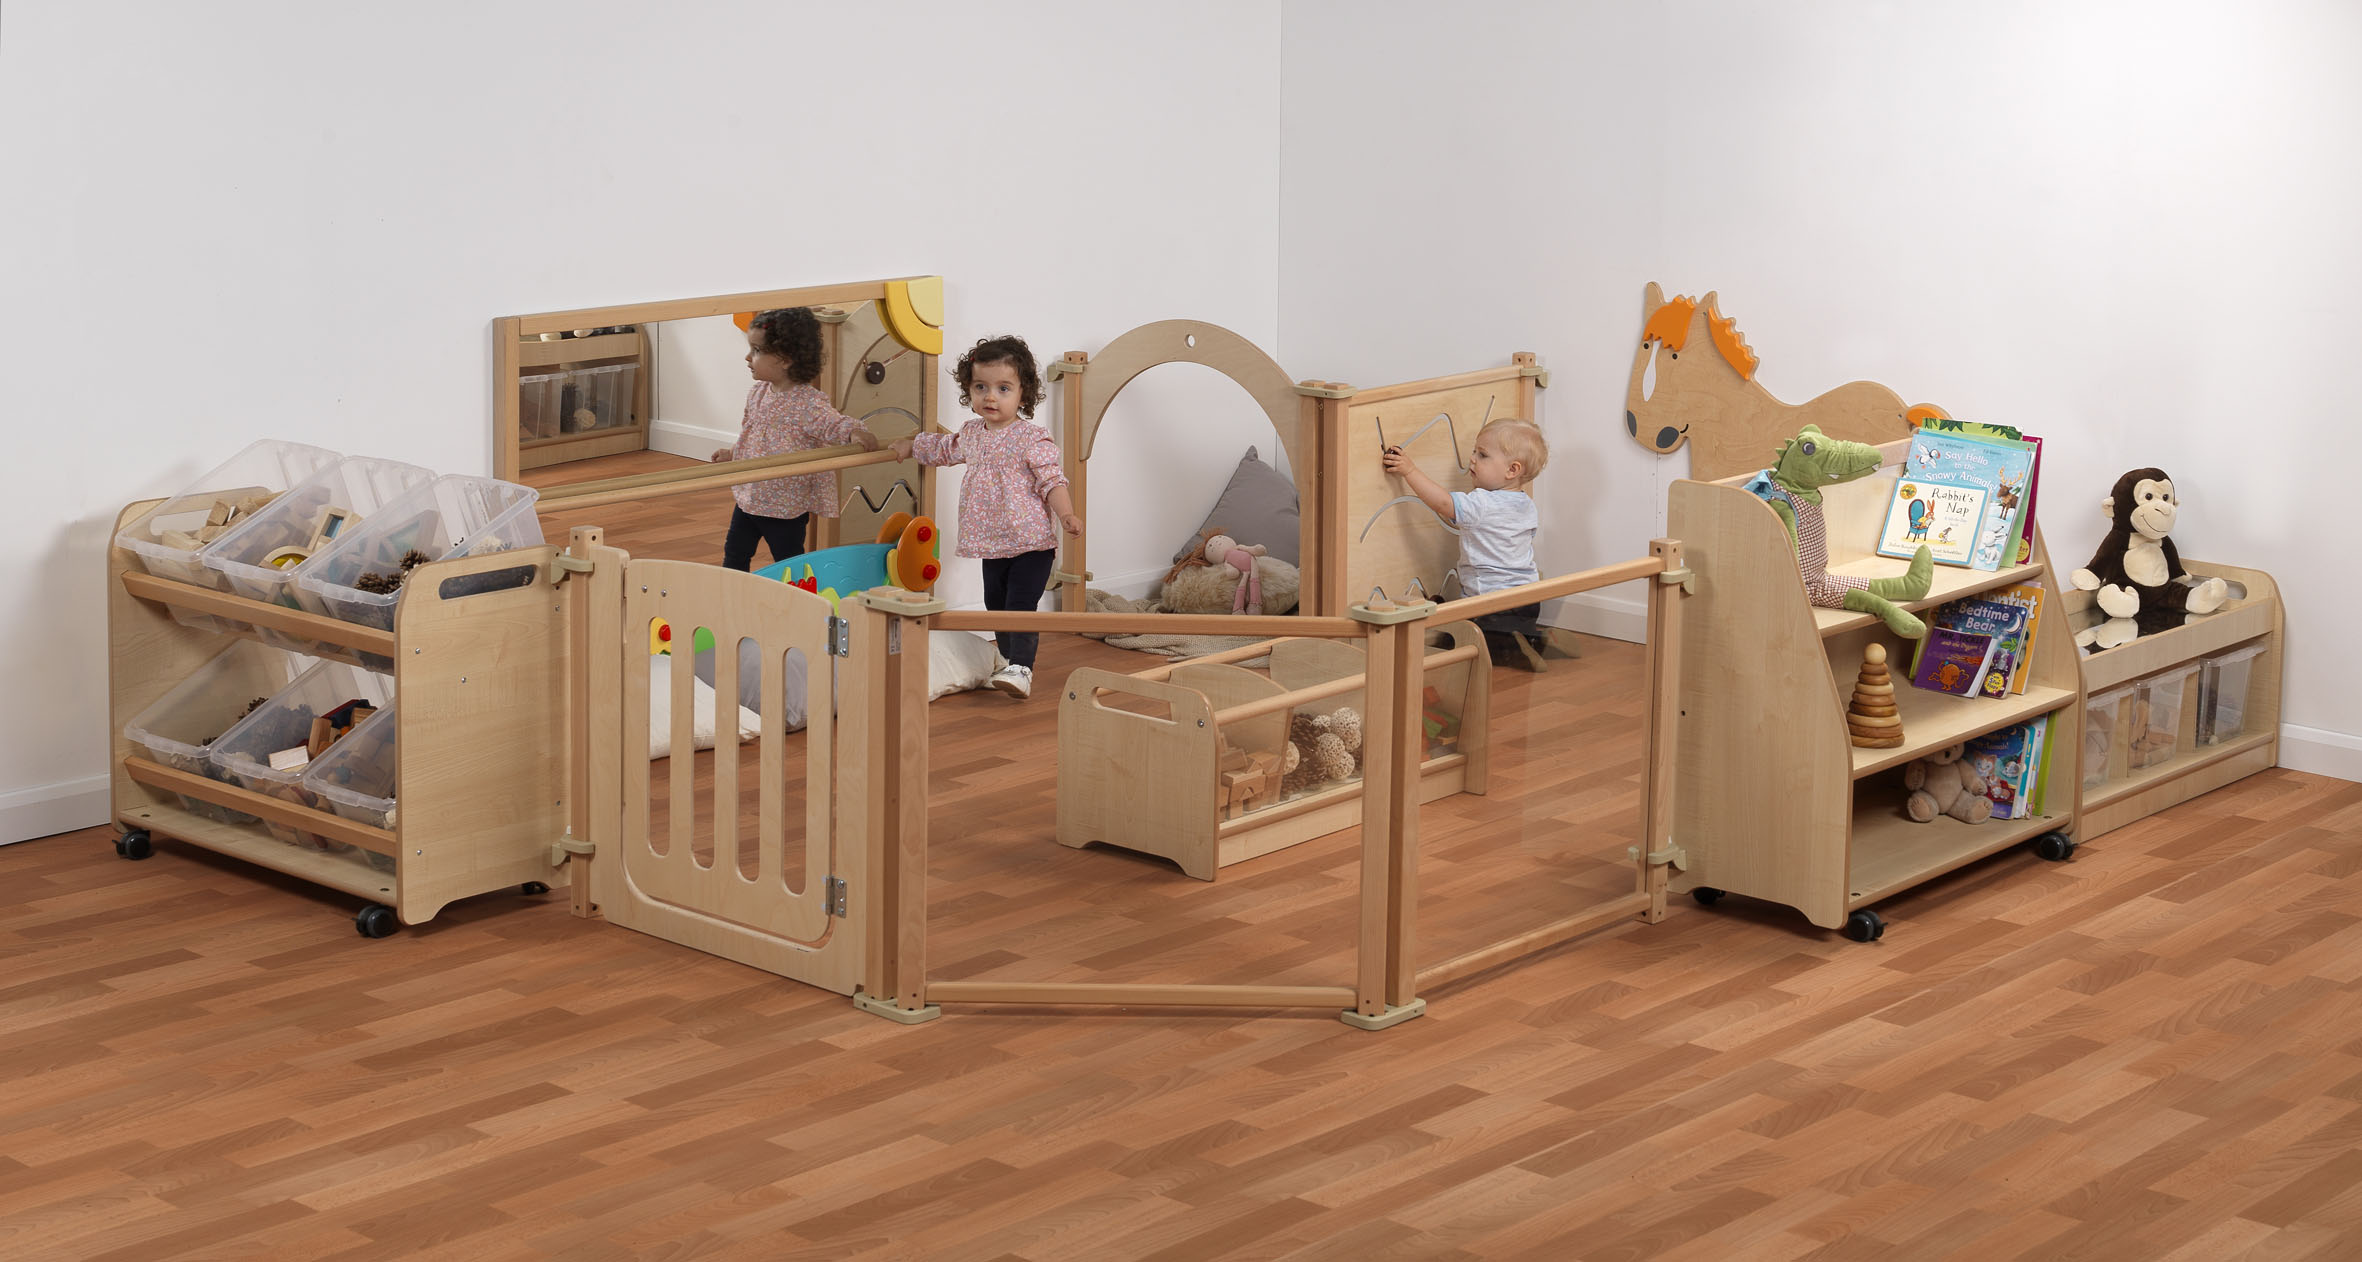 Baby Enclosure Zone